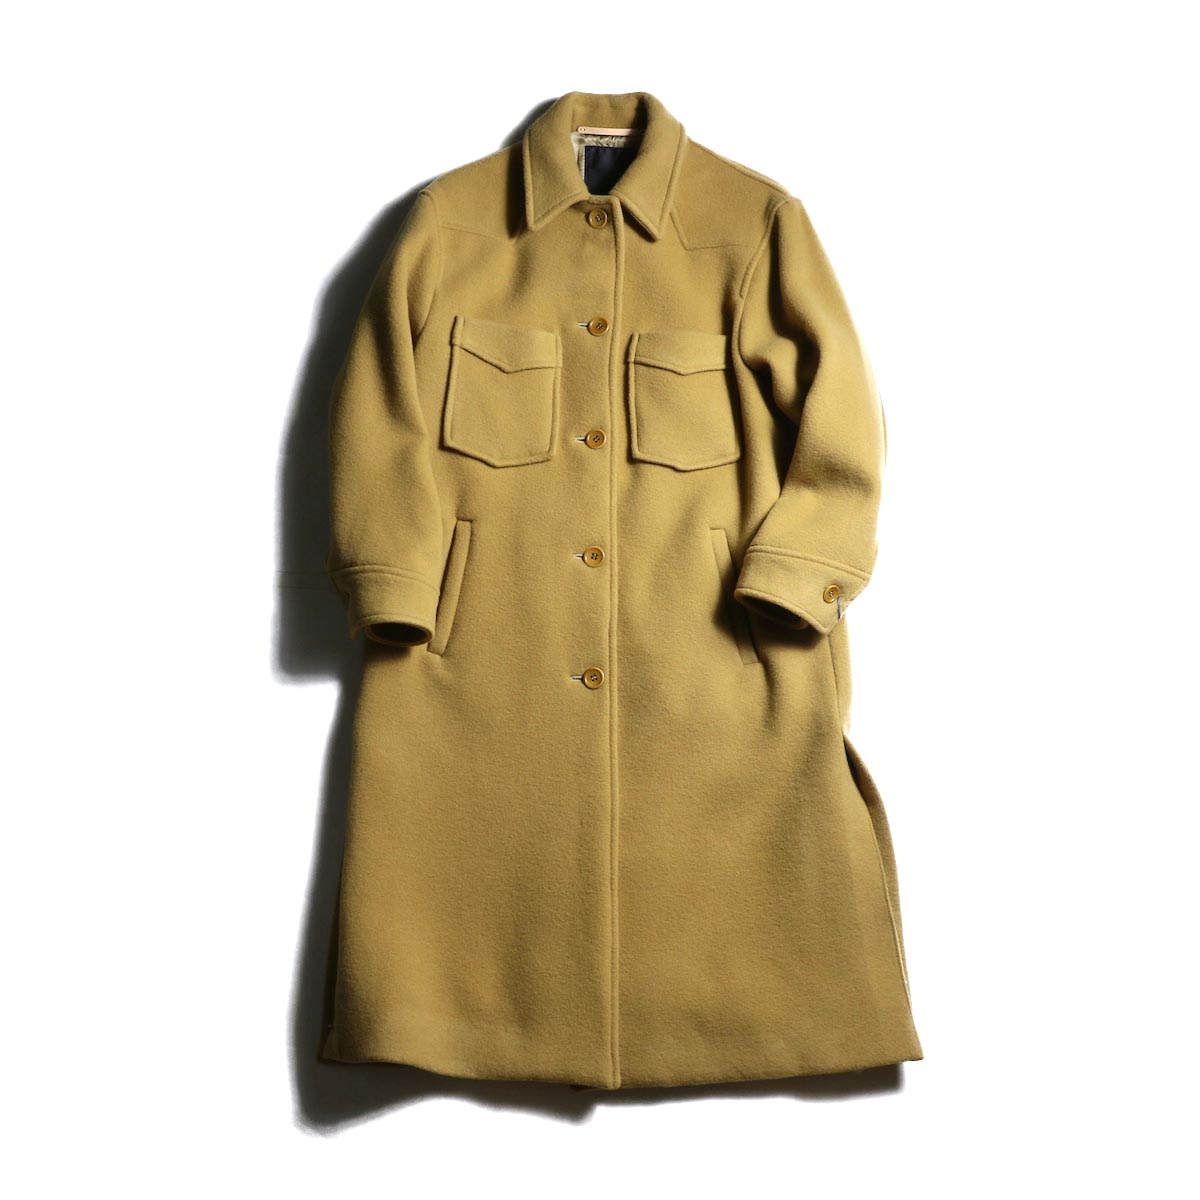 UNUSED Ladie's / US1710 Wool Coat (Beige)